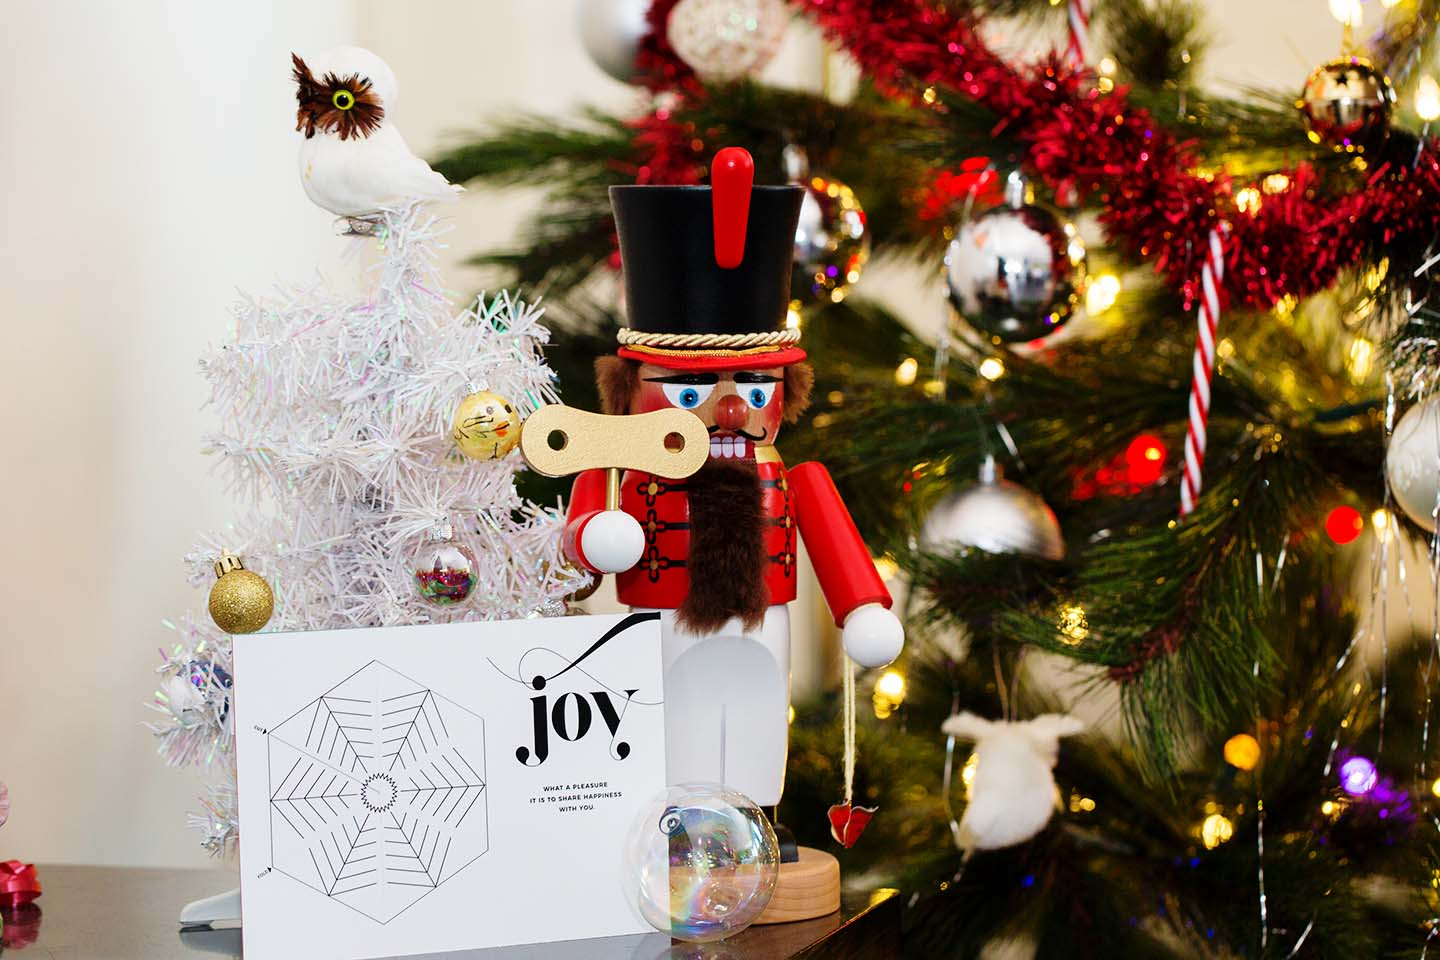 A white Wunderfold card with the word Joy on it next to a nutcracker and tree in front of a large Christmas tree